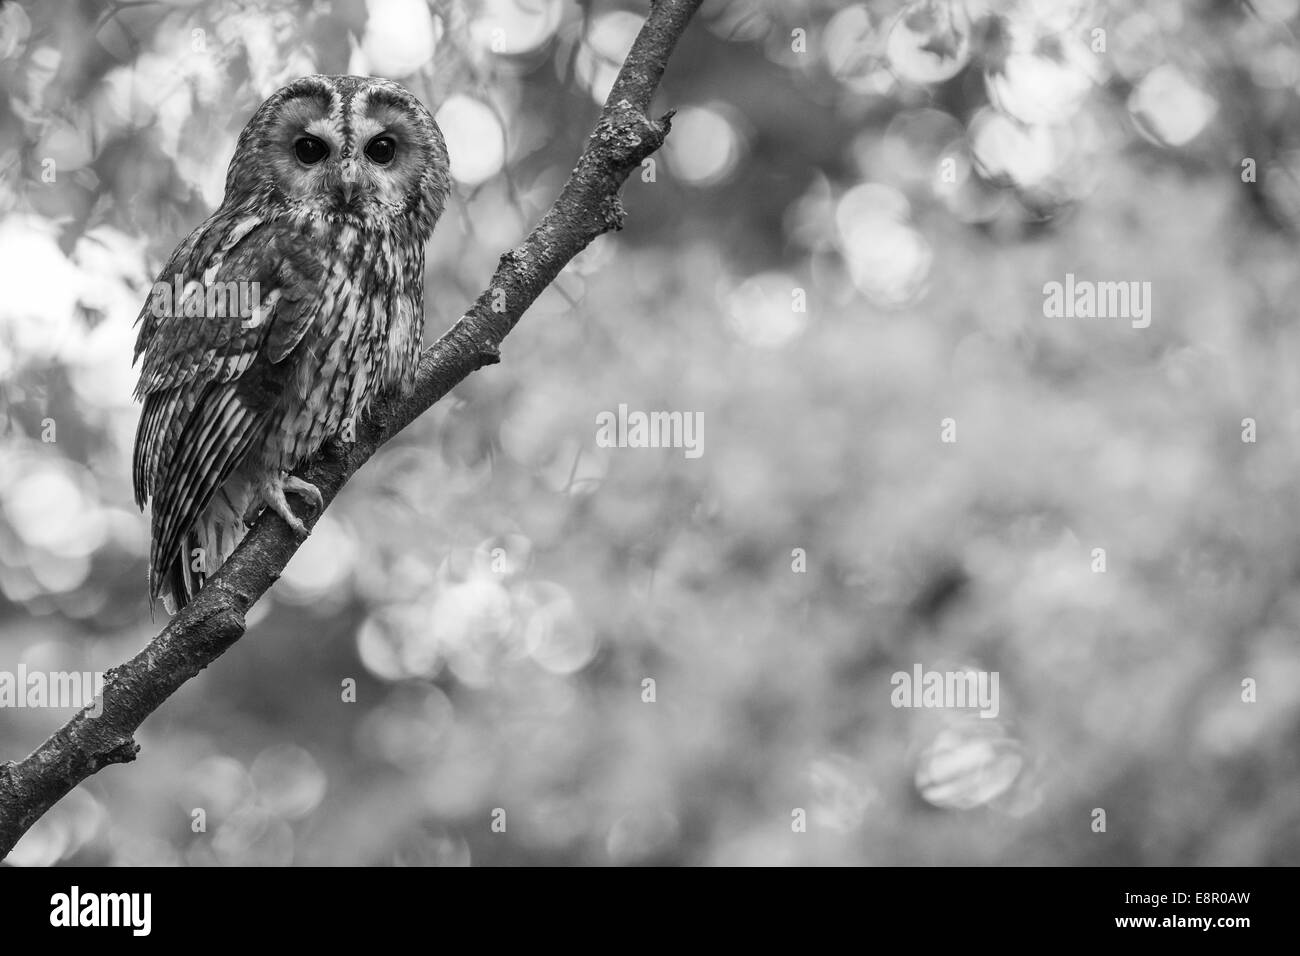 Tawny owl Strix aluco (captive), adult male, perched in woodland tree canopy, Hawk Conservancy Trust, Hampshire, - Stock Image